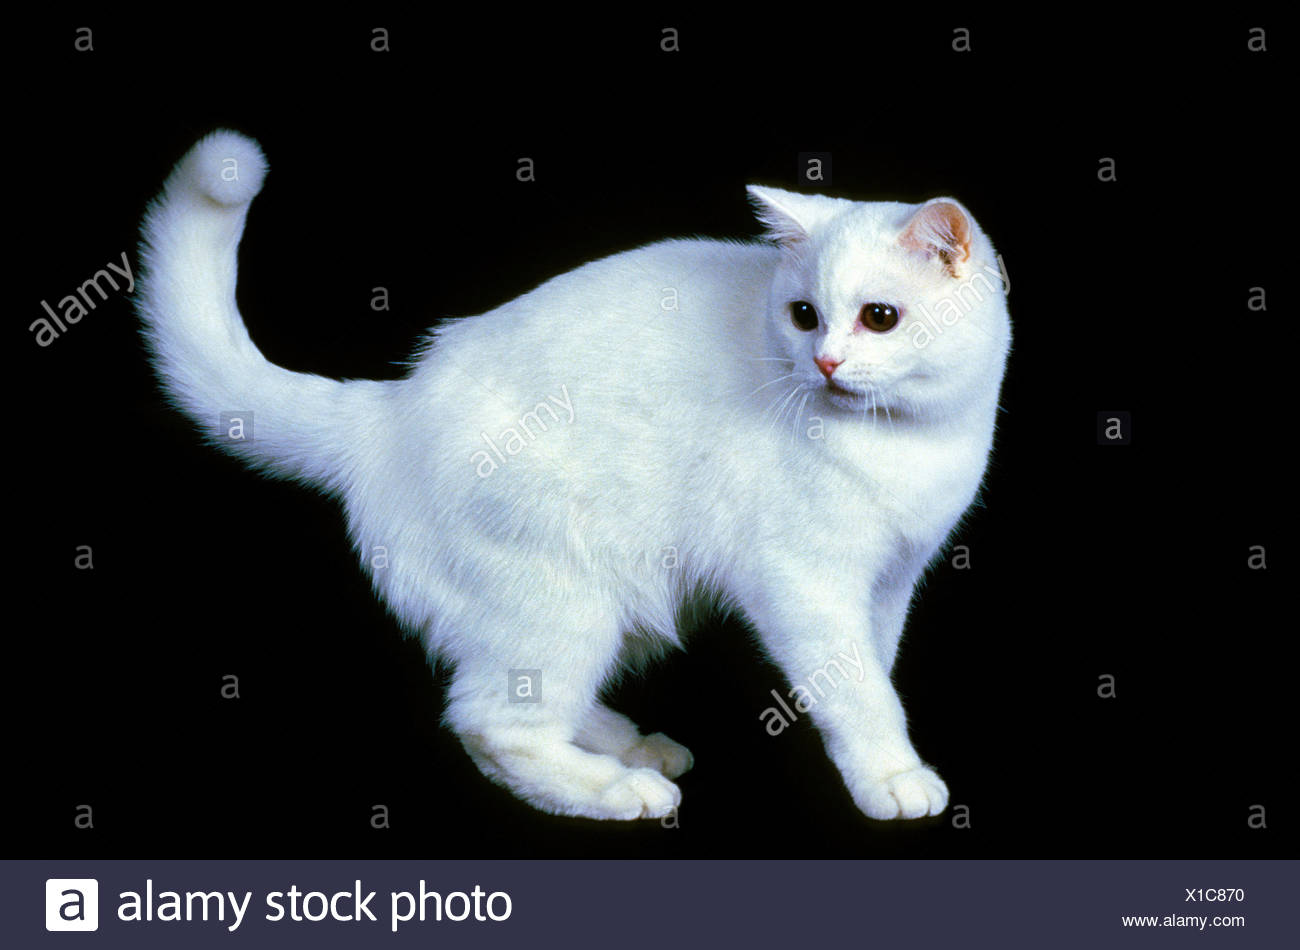 White British Shorthair Domestic Cat Adult Against Back Background